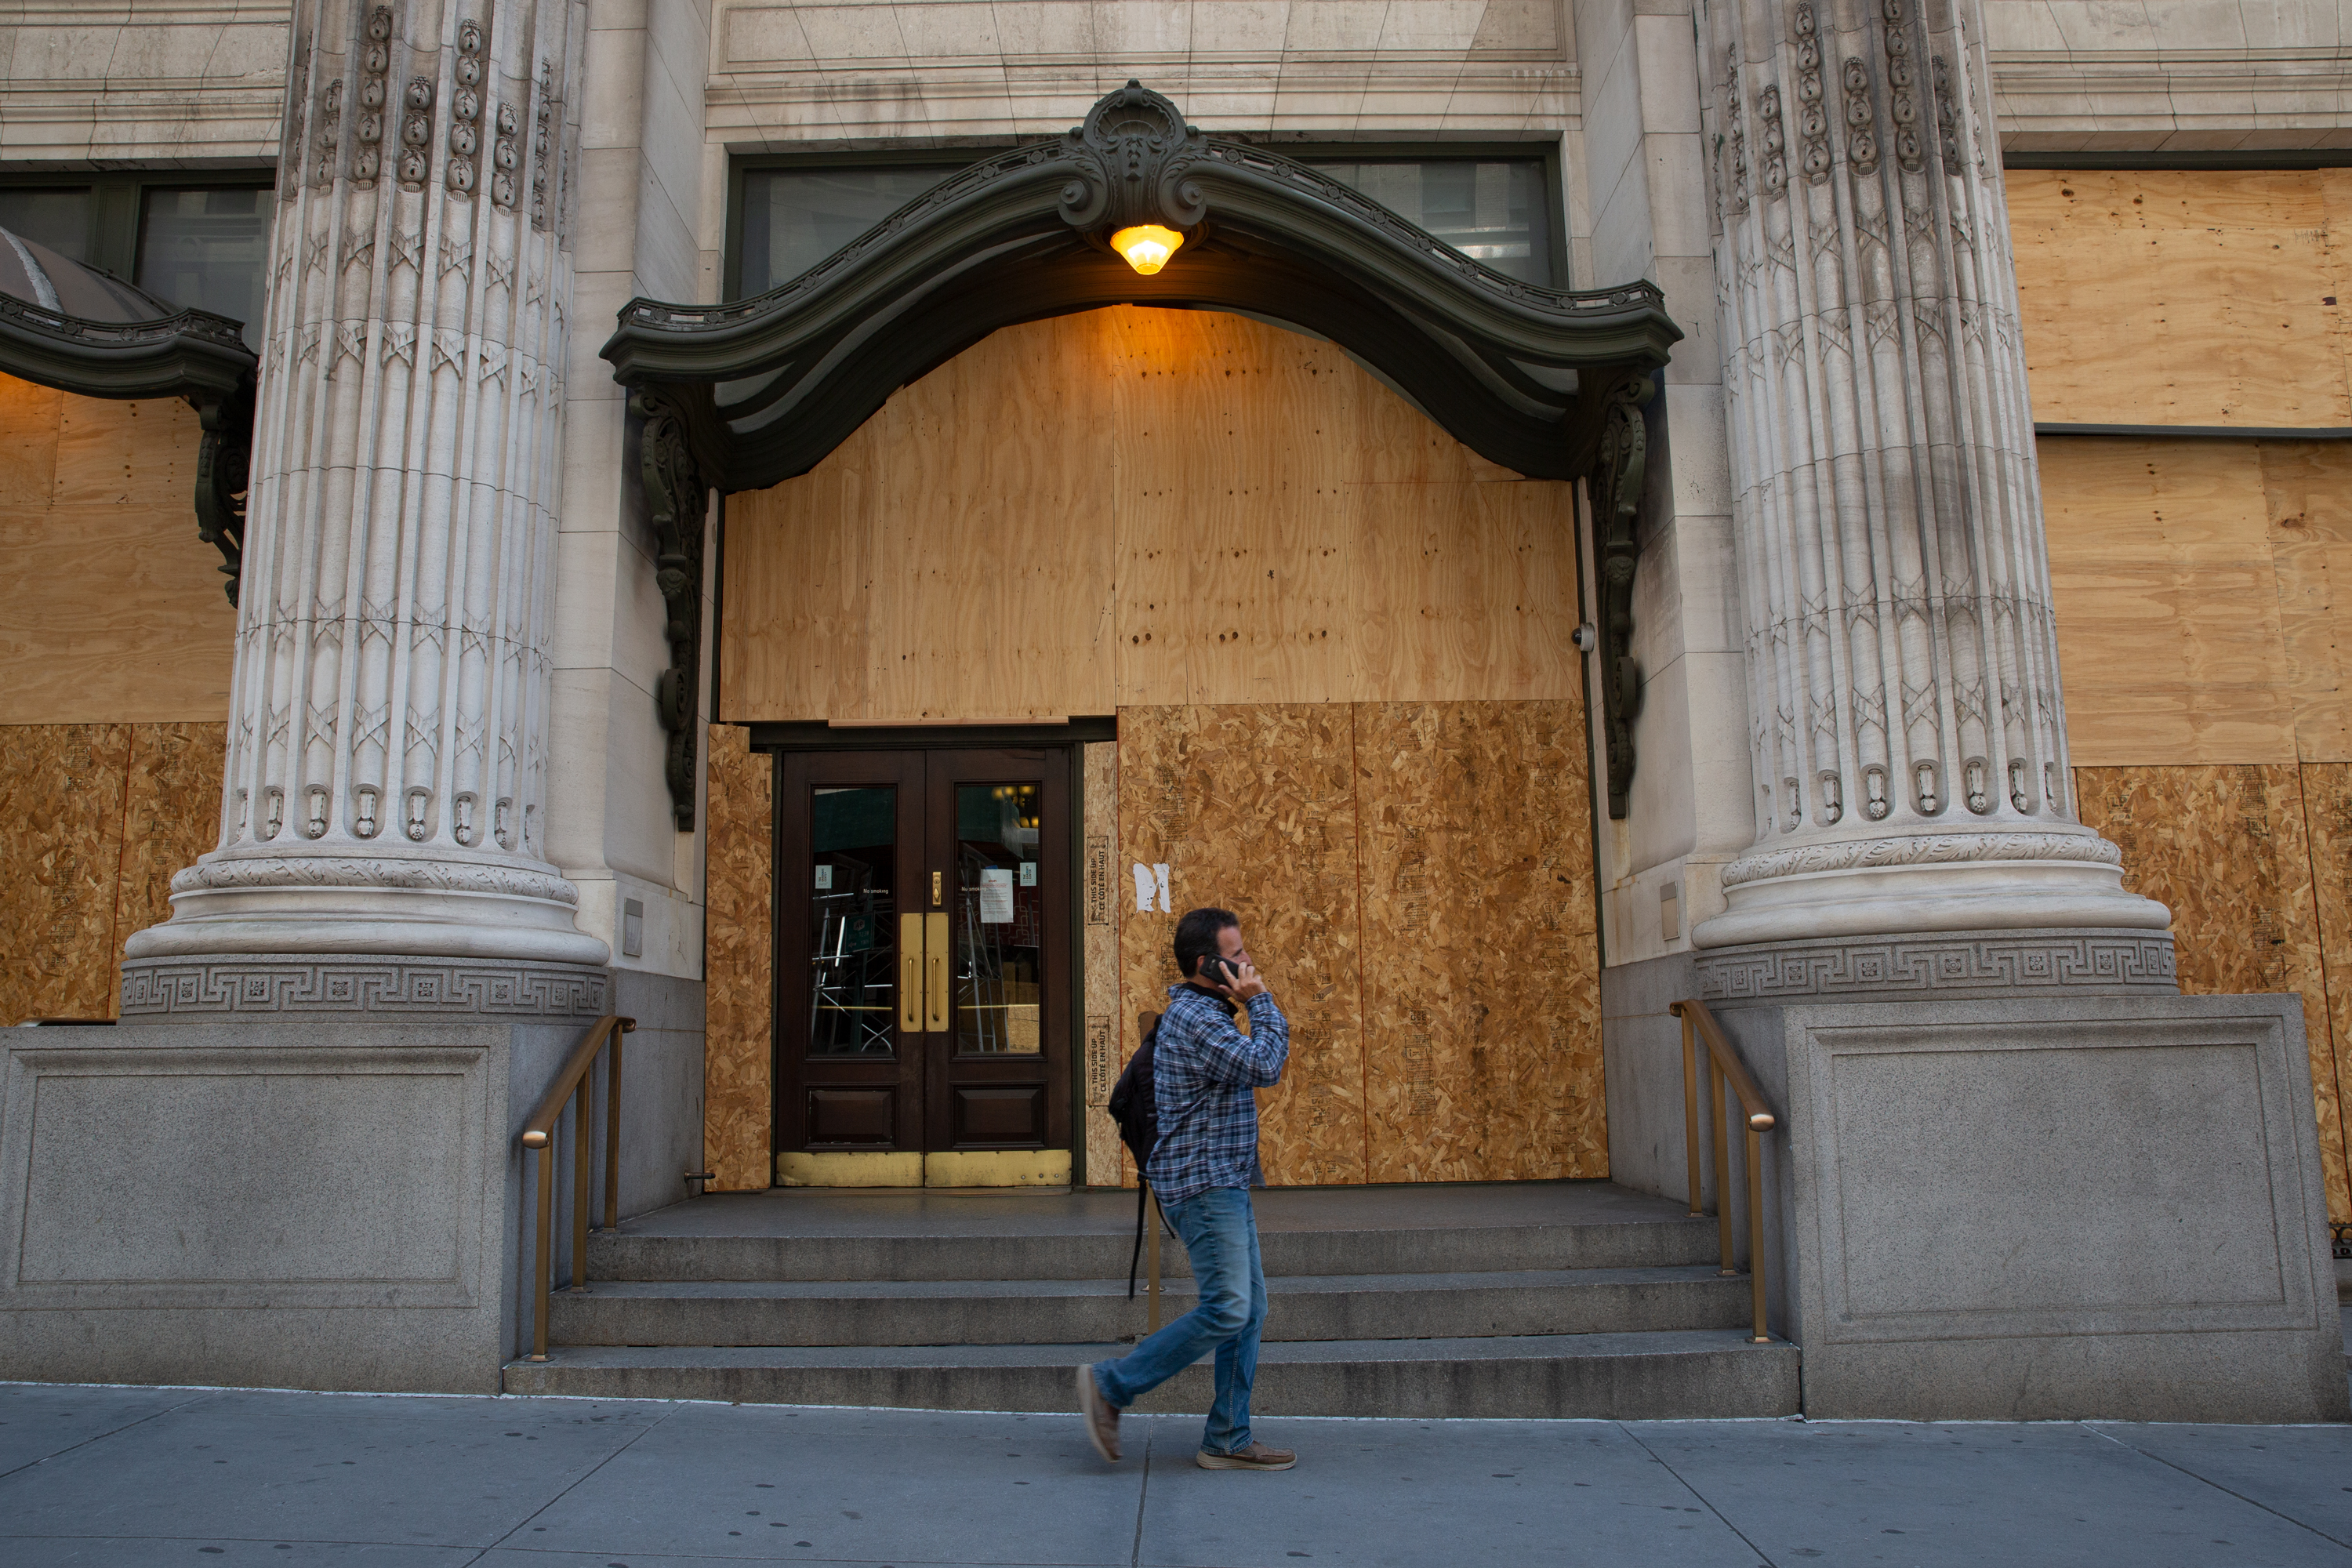 The CUNY Graduate Center in Midtown was boarded up during the coronavirus outbreak, June 25, 2020.